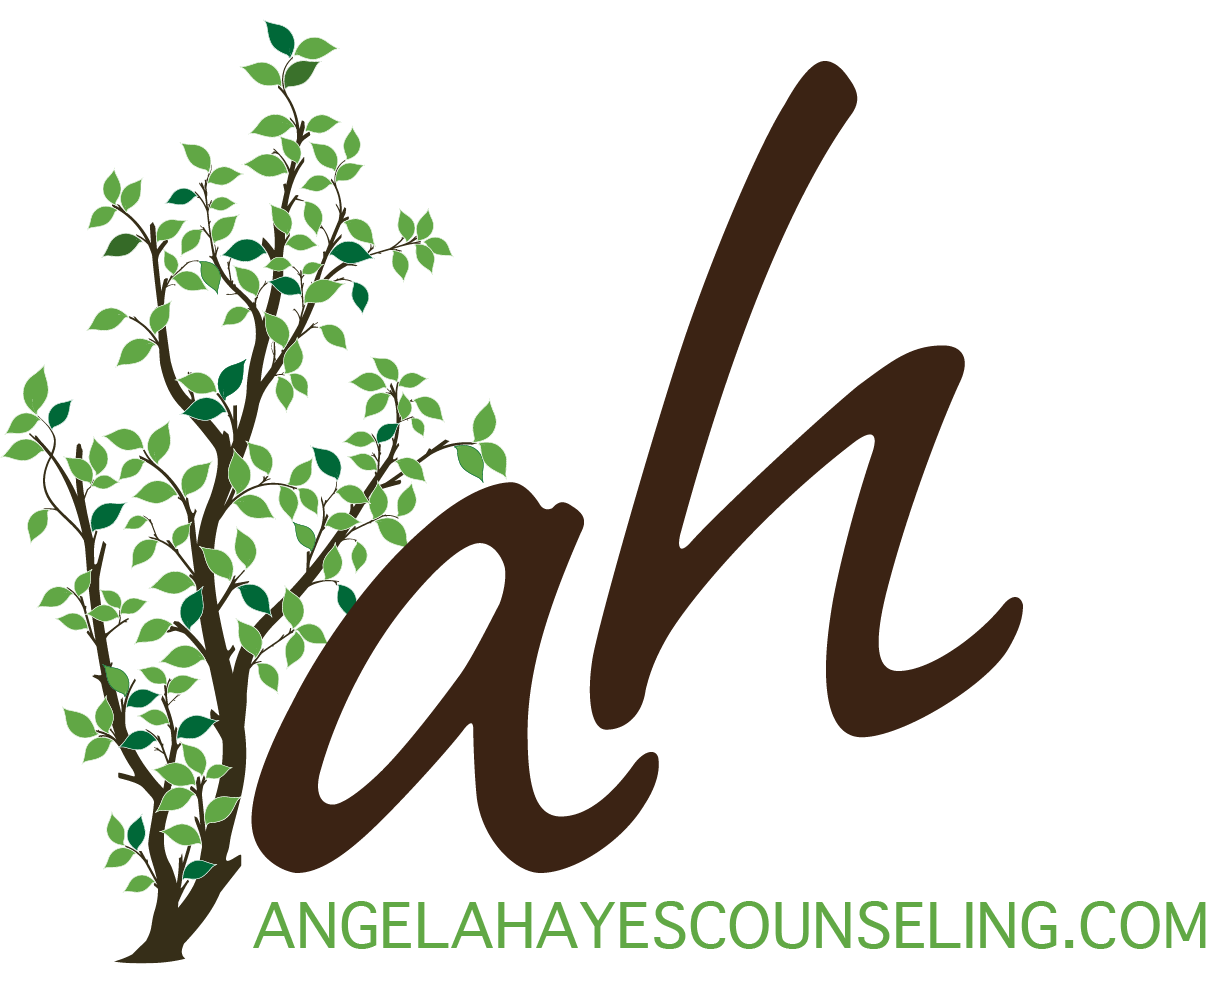 Angela Hayes Counseling